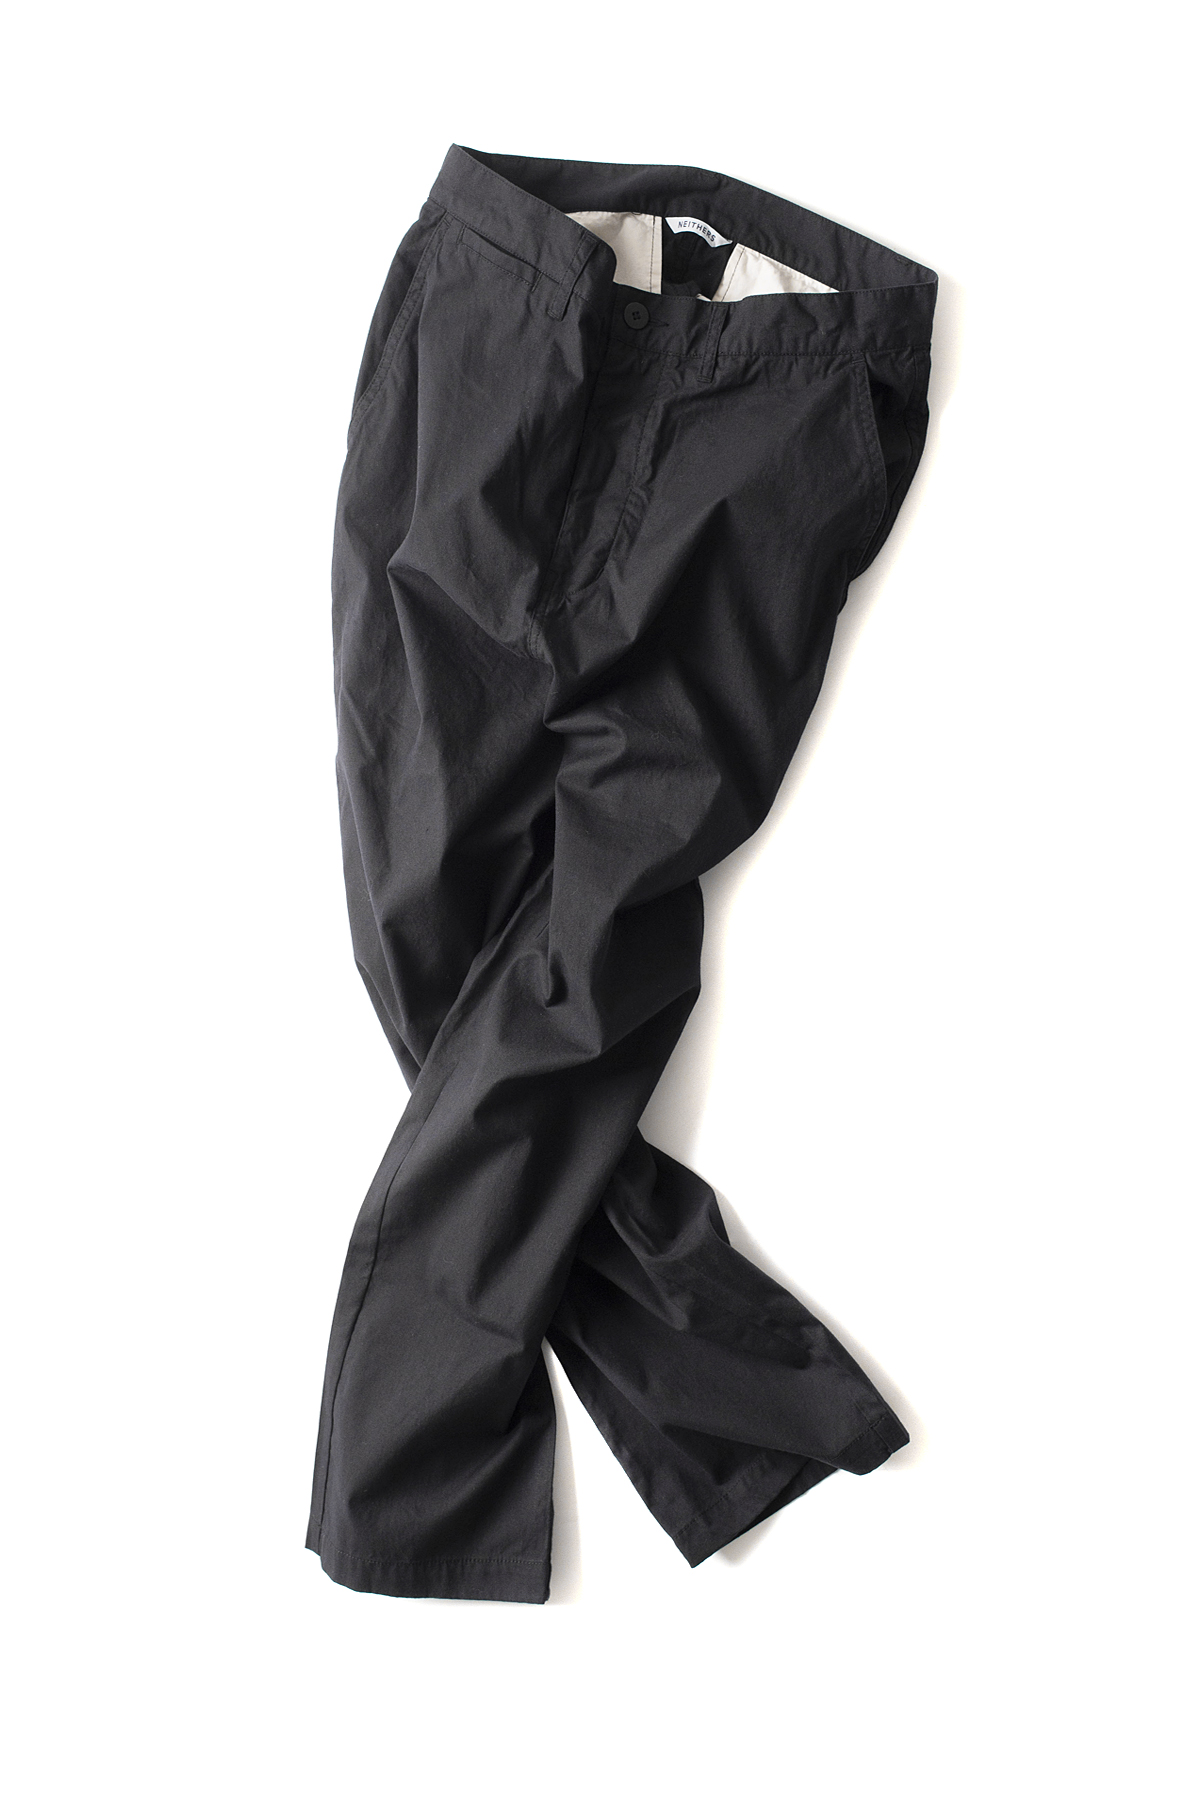 NEITHERS : Cut Off Crop Pants (Black)